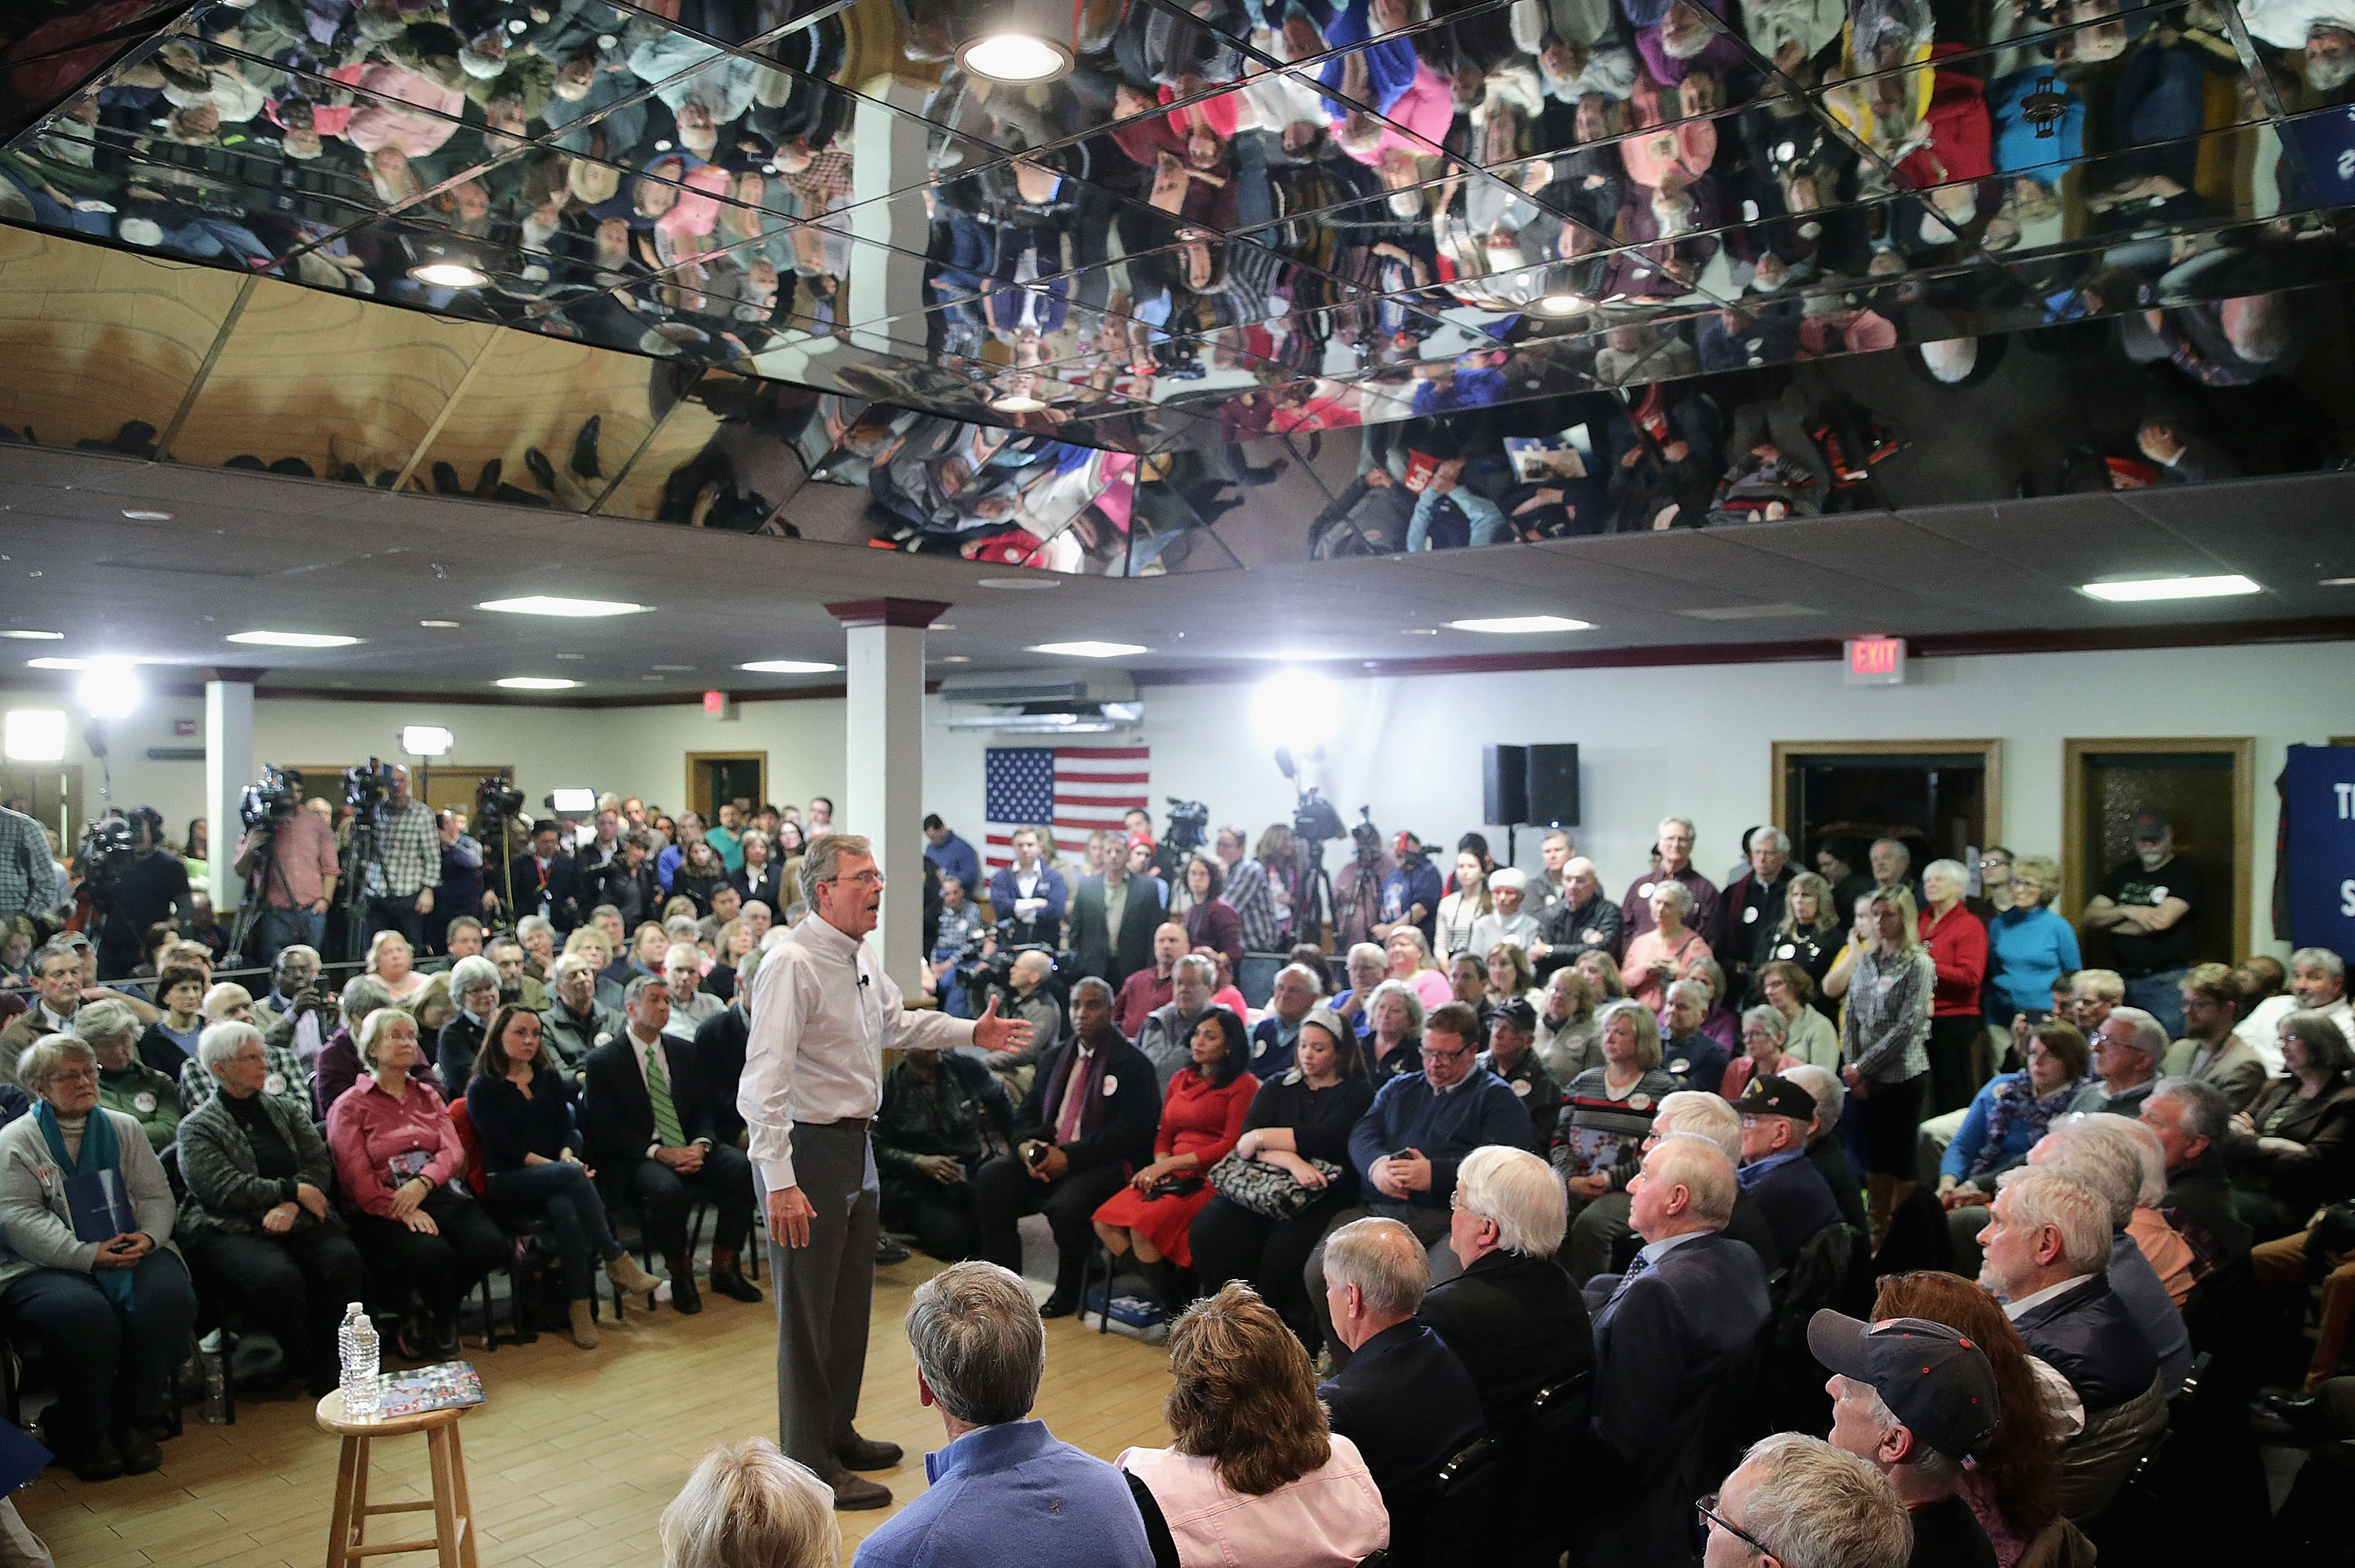 Jeb Bush holds a campaign town hall meeting at the Alpine Club on Monday in Manchester, N.H. (Chip Somodevilla/Getty Images)